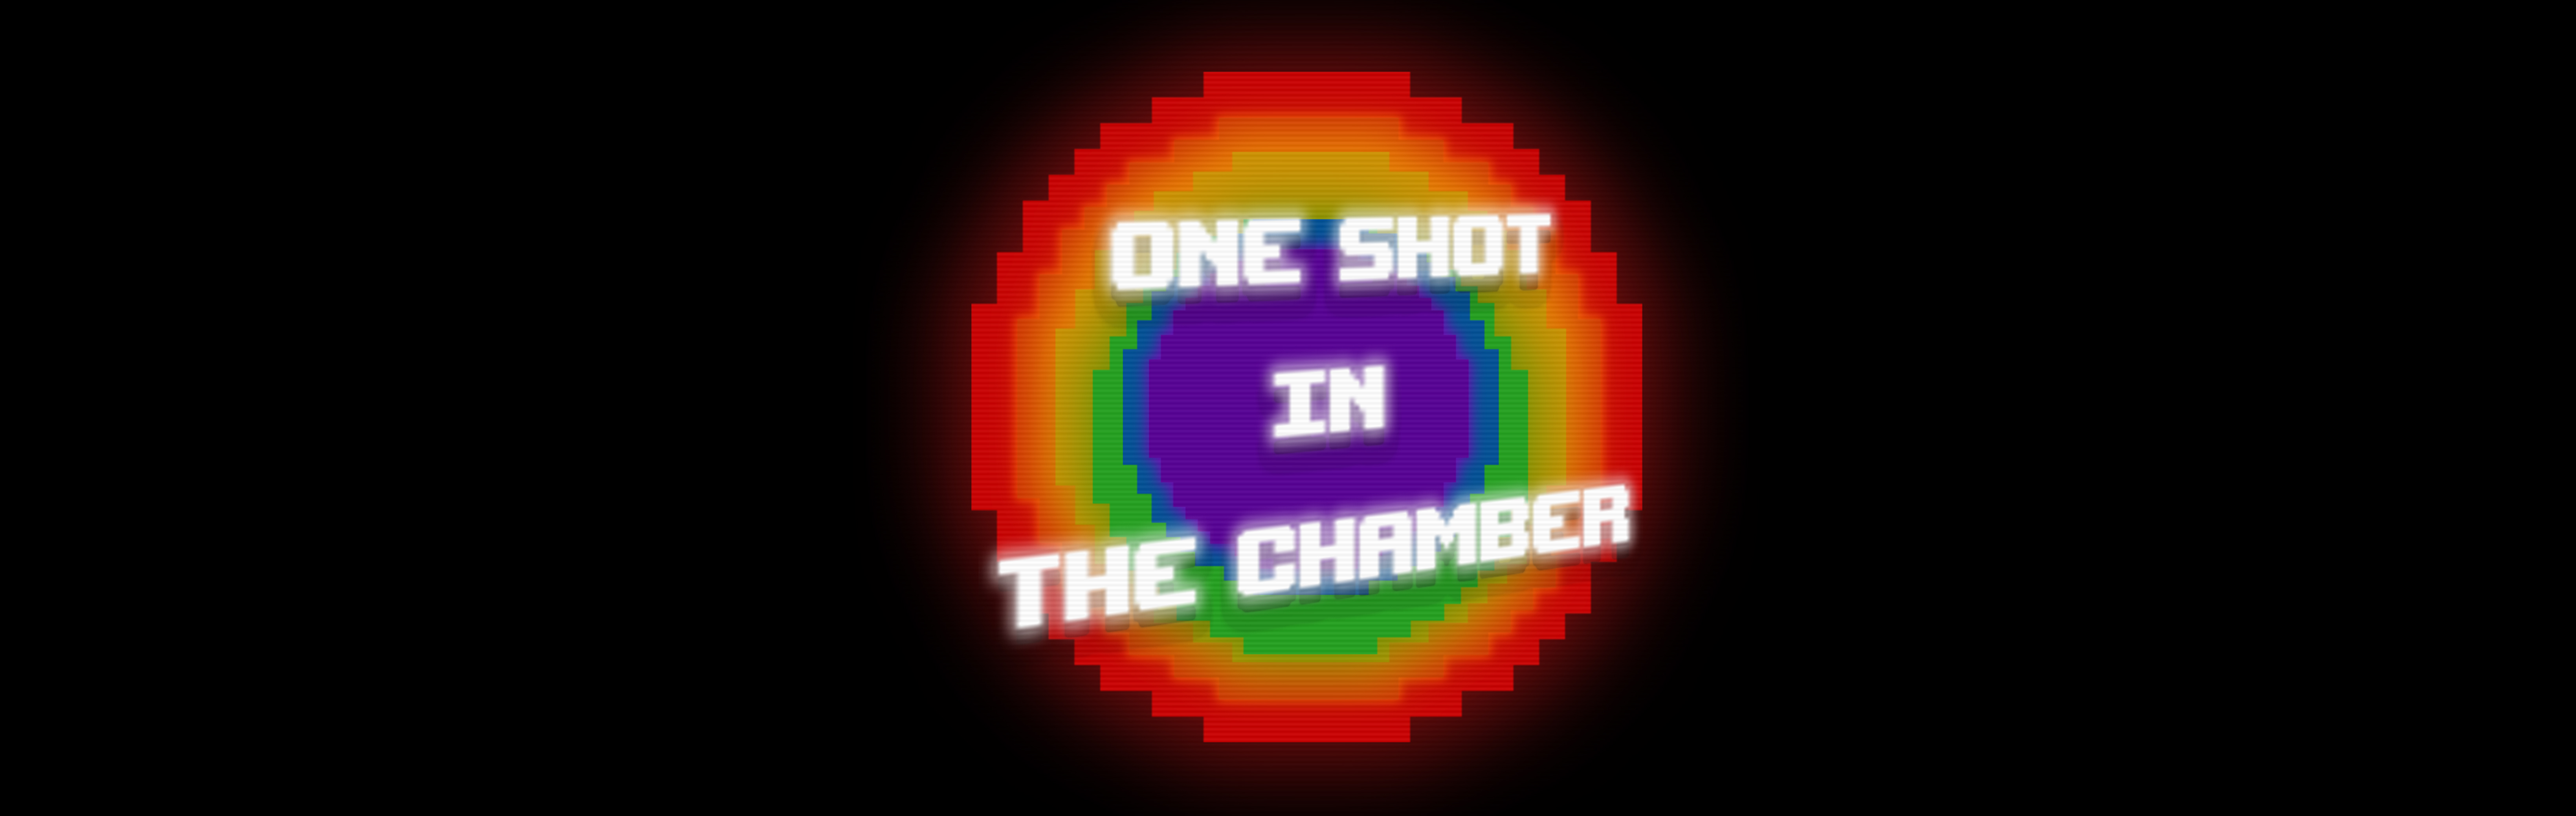 One Shot In The Chamber